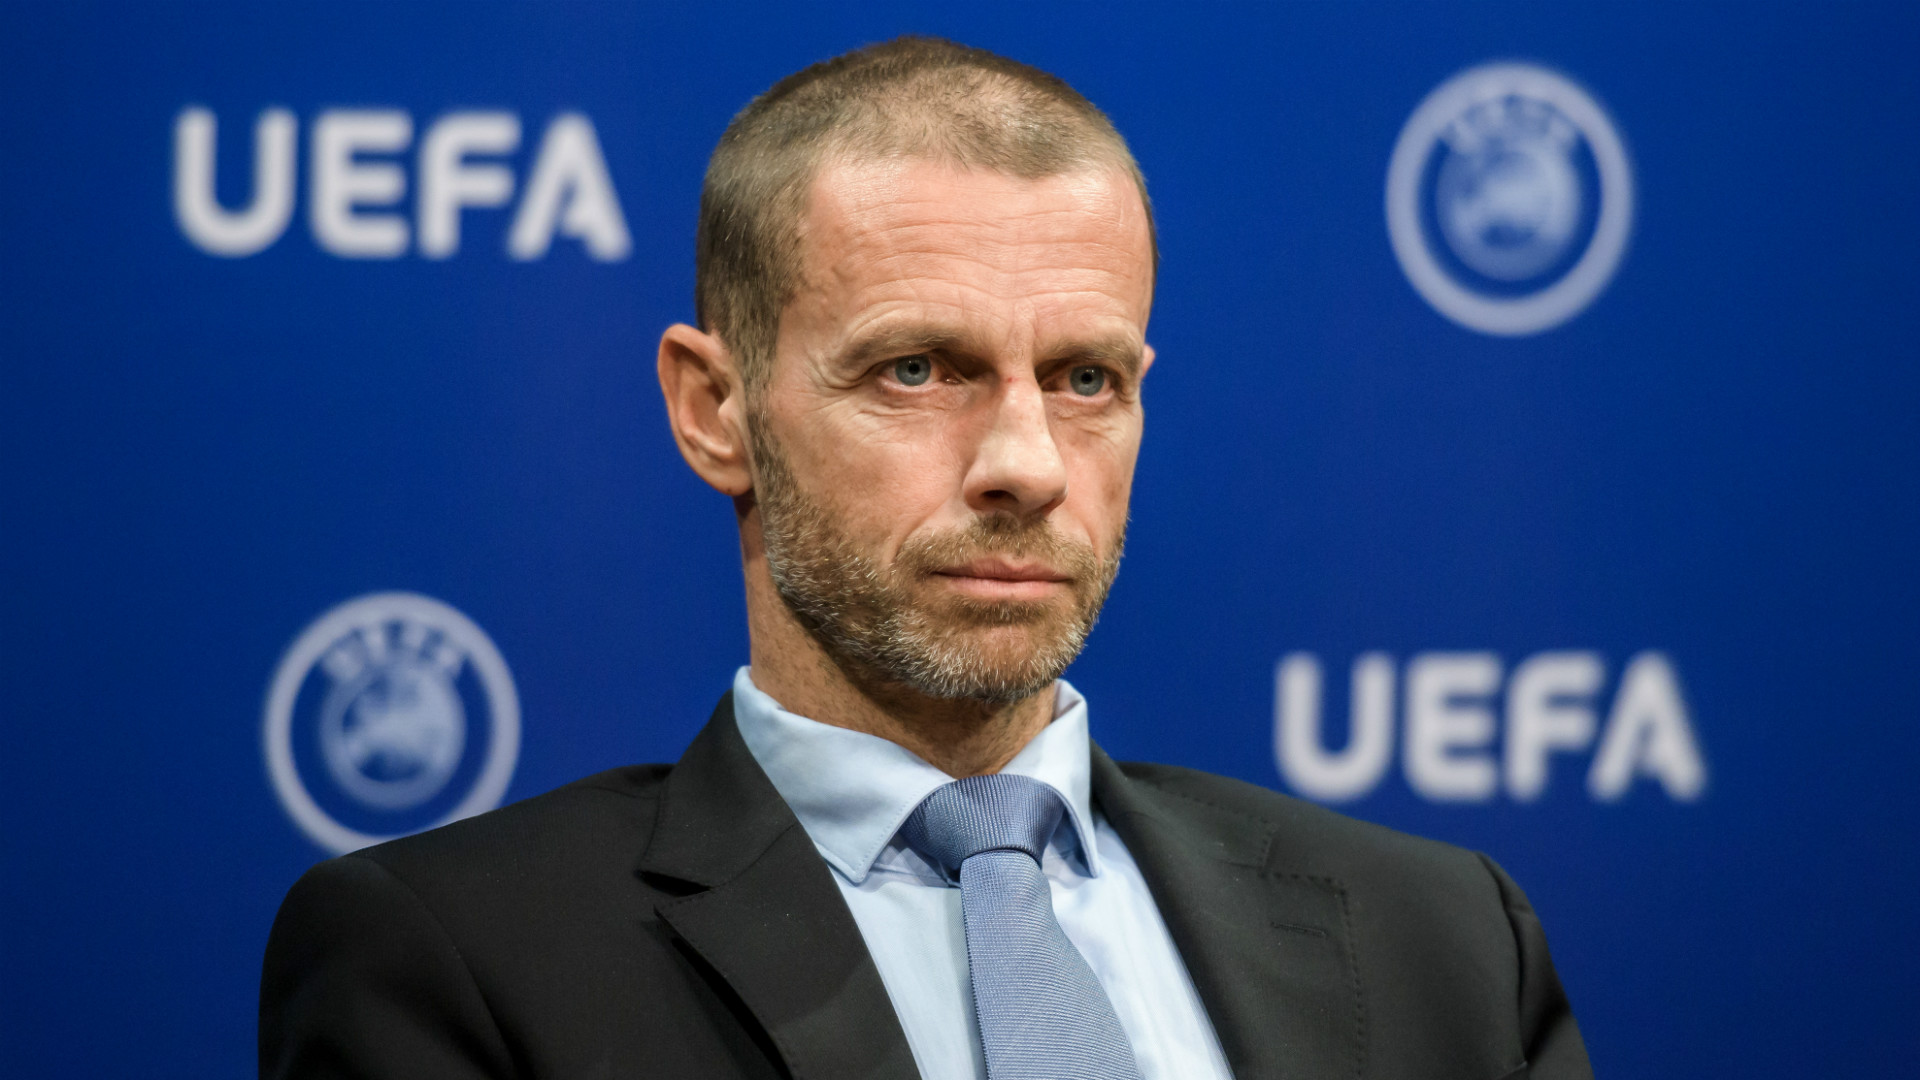 We've Not Done Enough To Tackle Racism – UEFA President, Ceferin